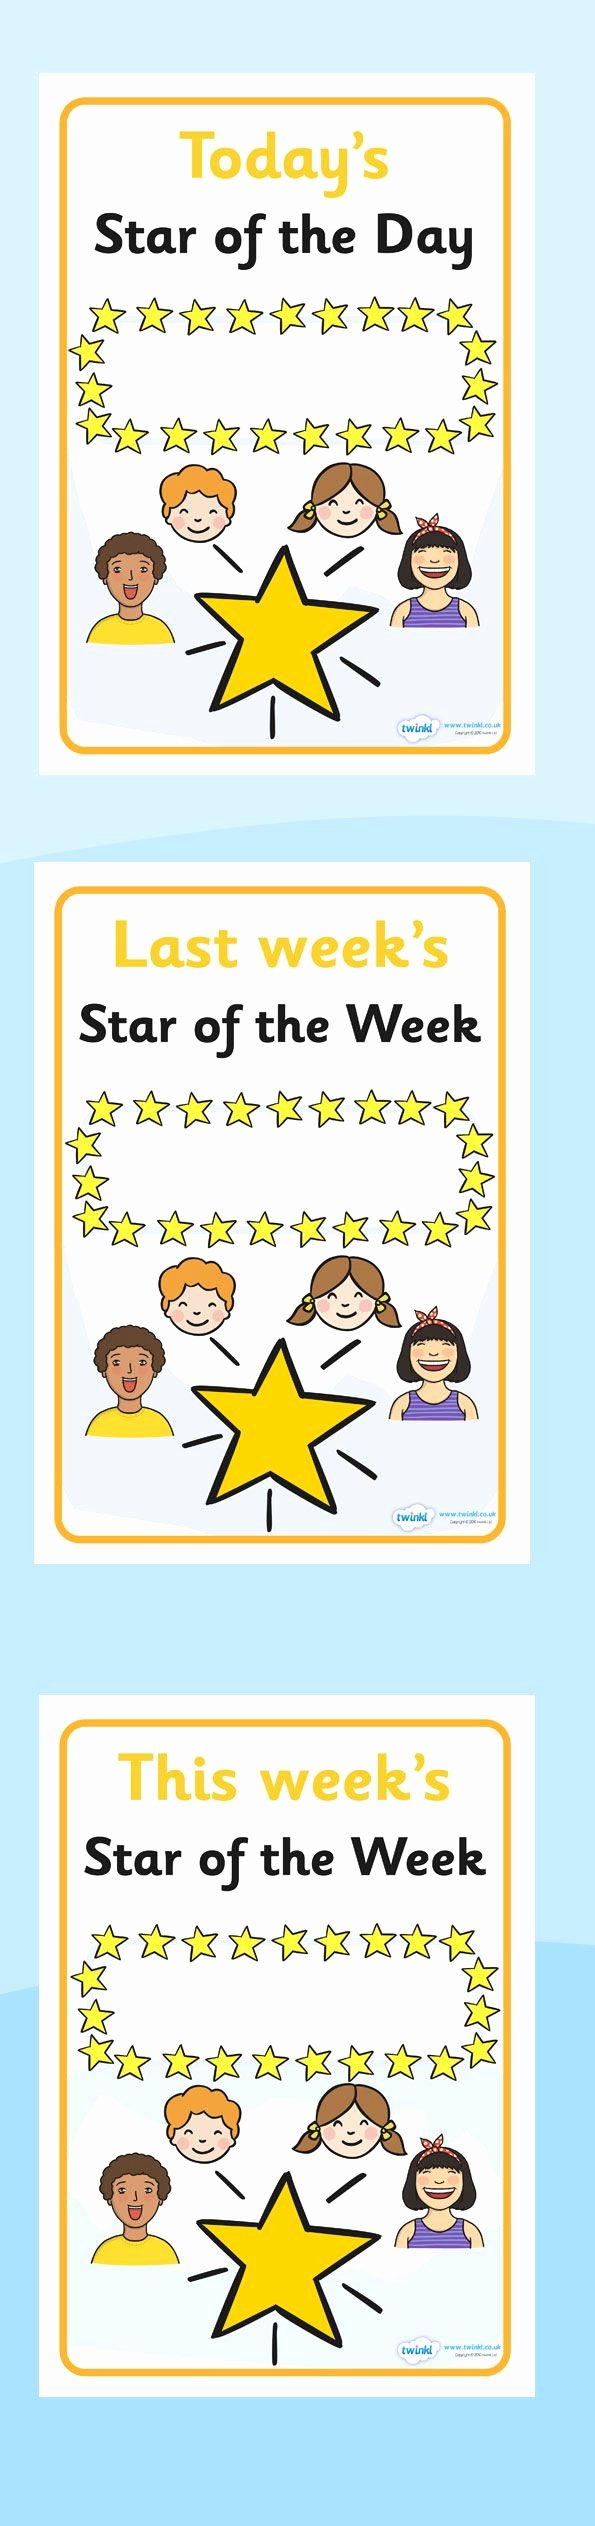 Star Of the Week Printable Inspirational 61 Best Images About Preschool Star the Week On